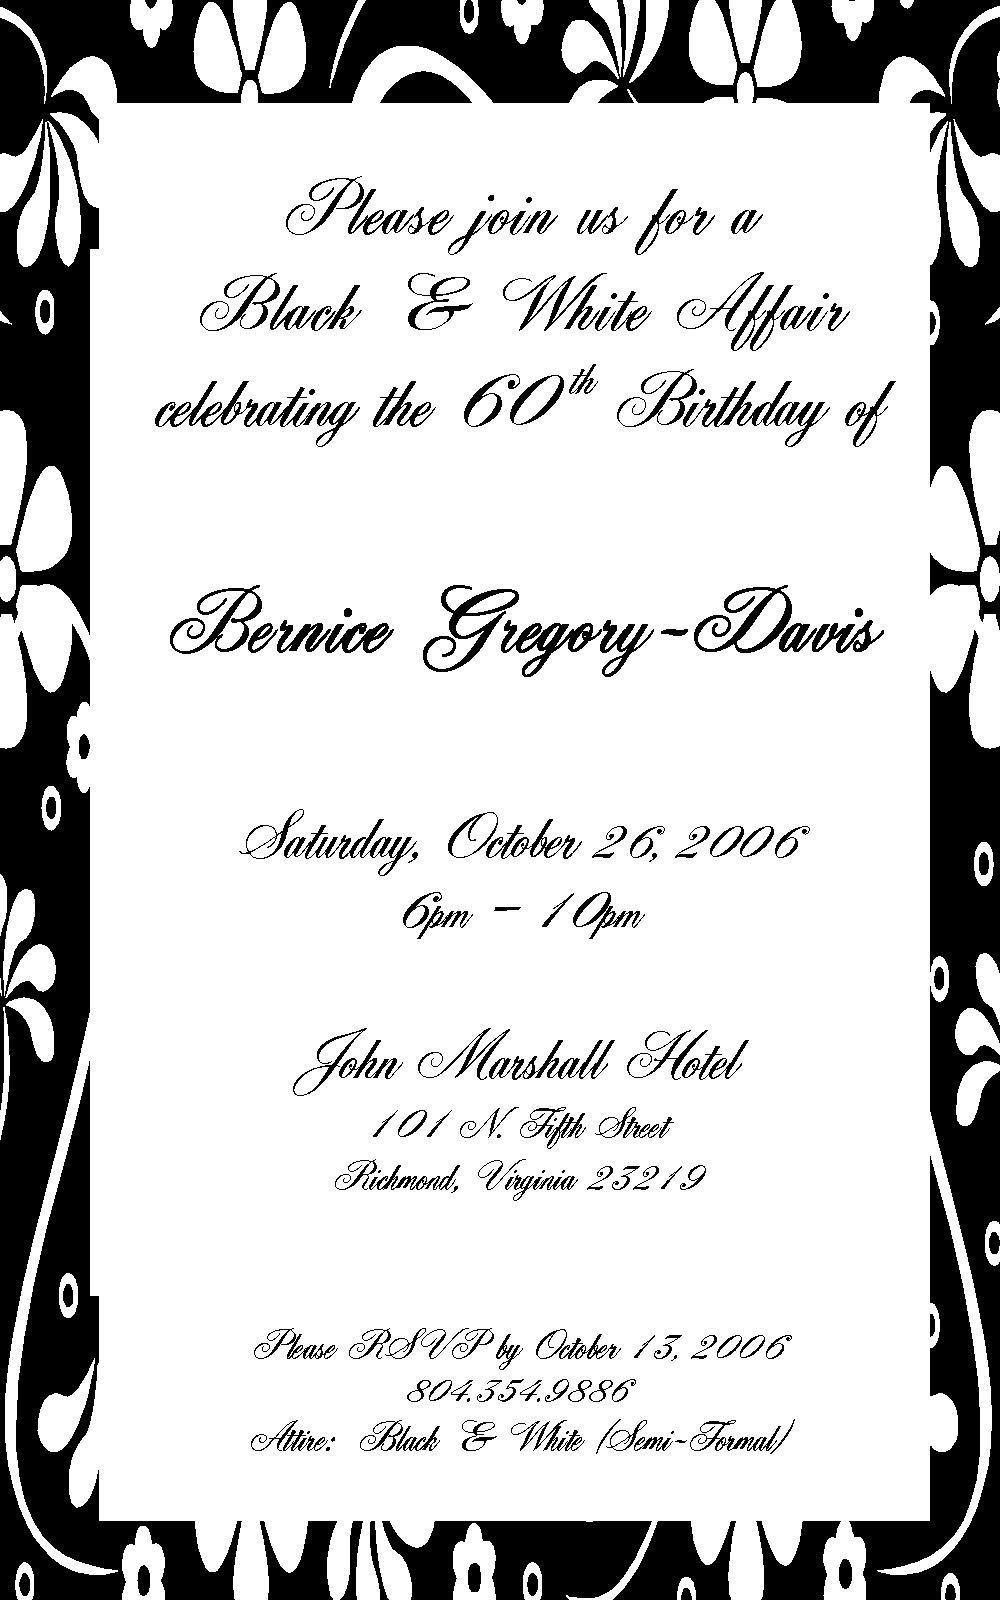 Images For > Birthday Dinner Party Invitation Template | ordination ...